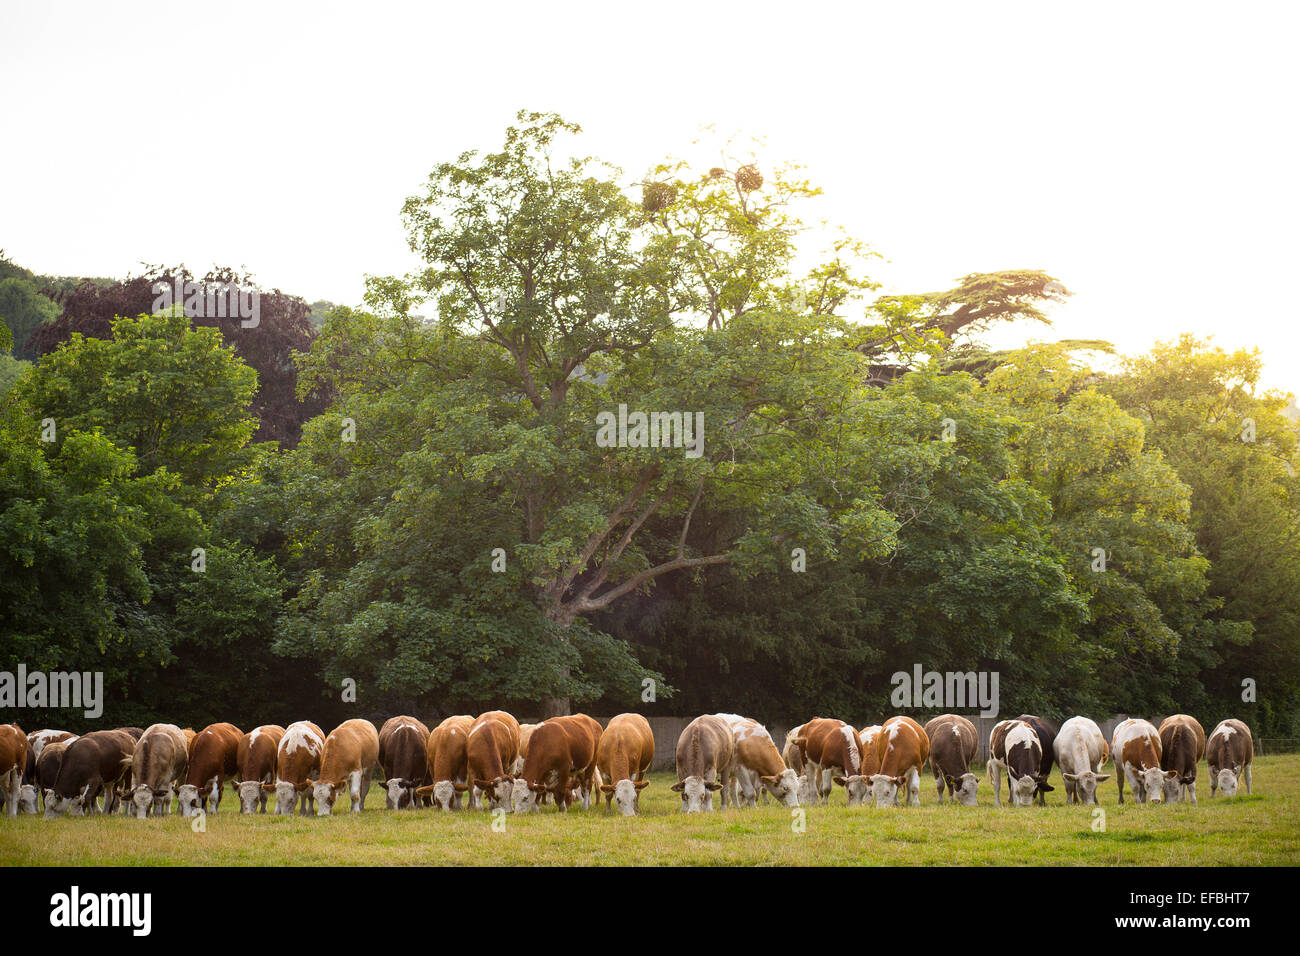 Row of cows grazing in rural summer meadow, Oxfordshire, England - Stock Image